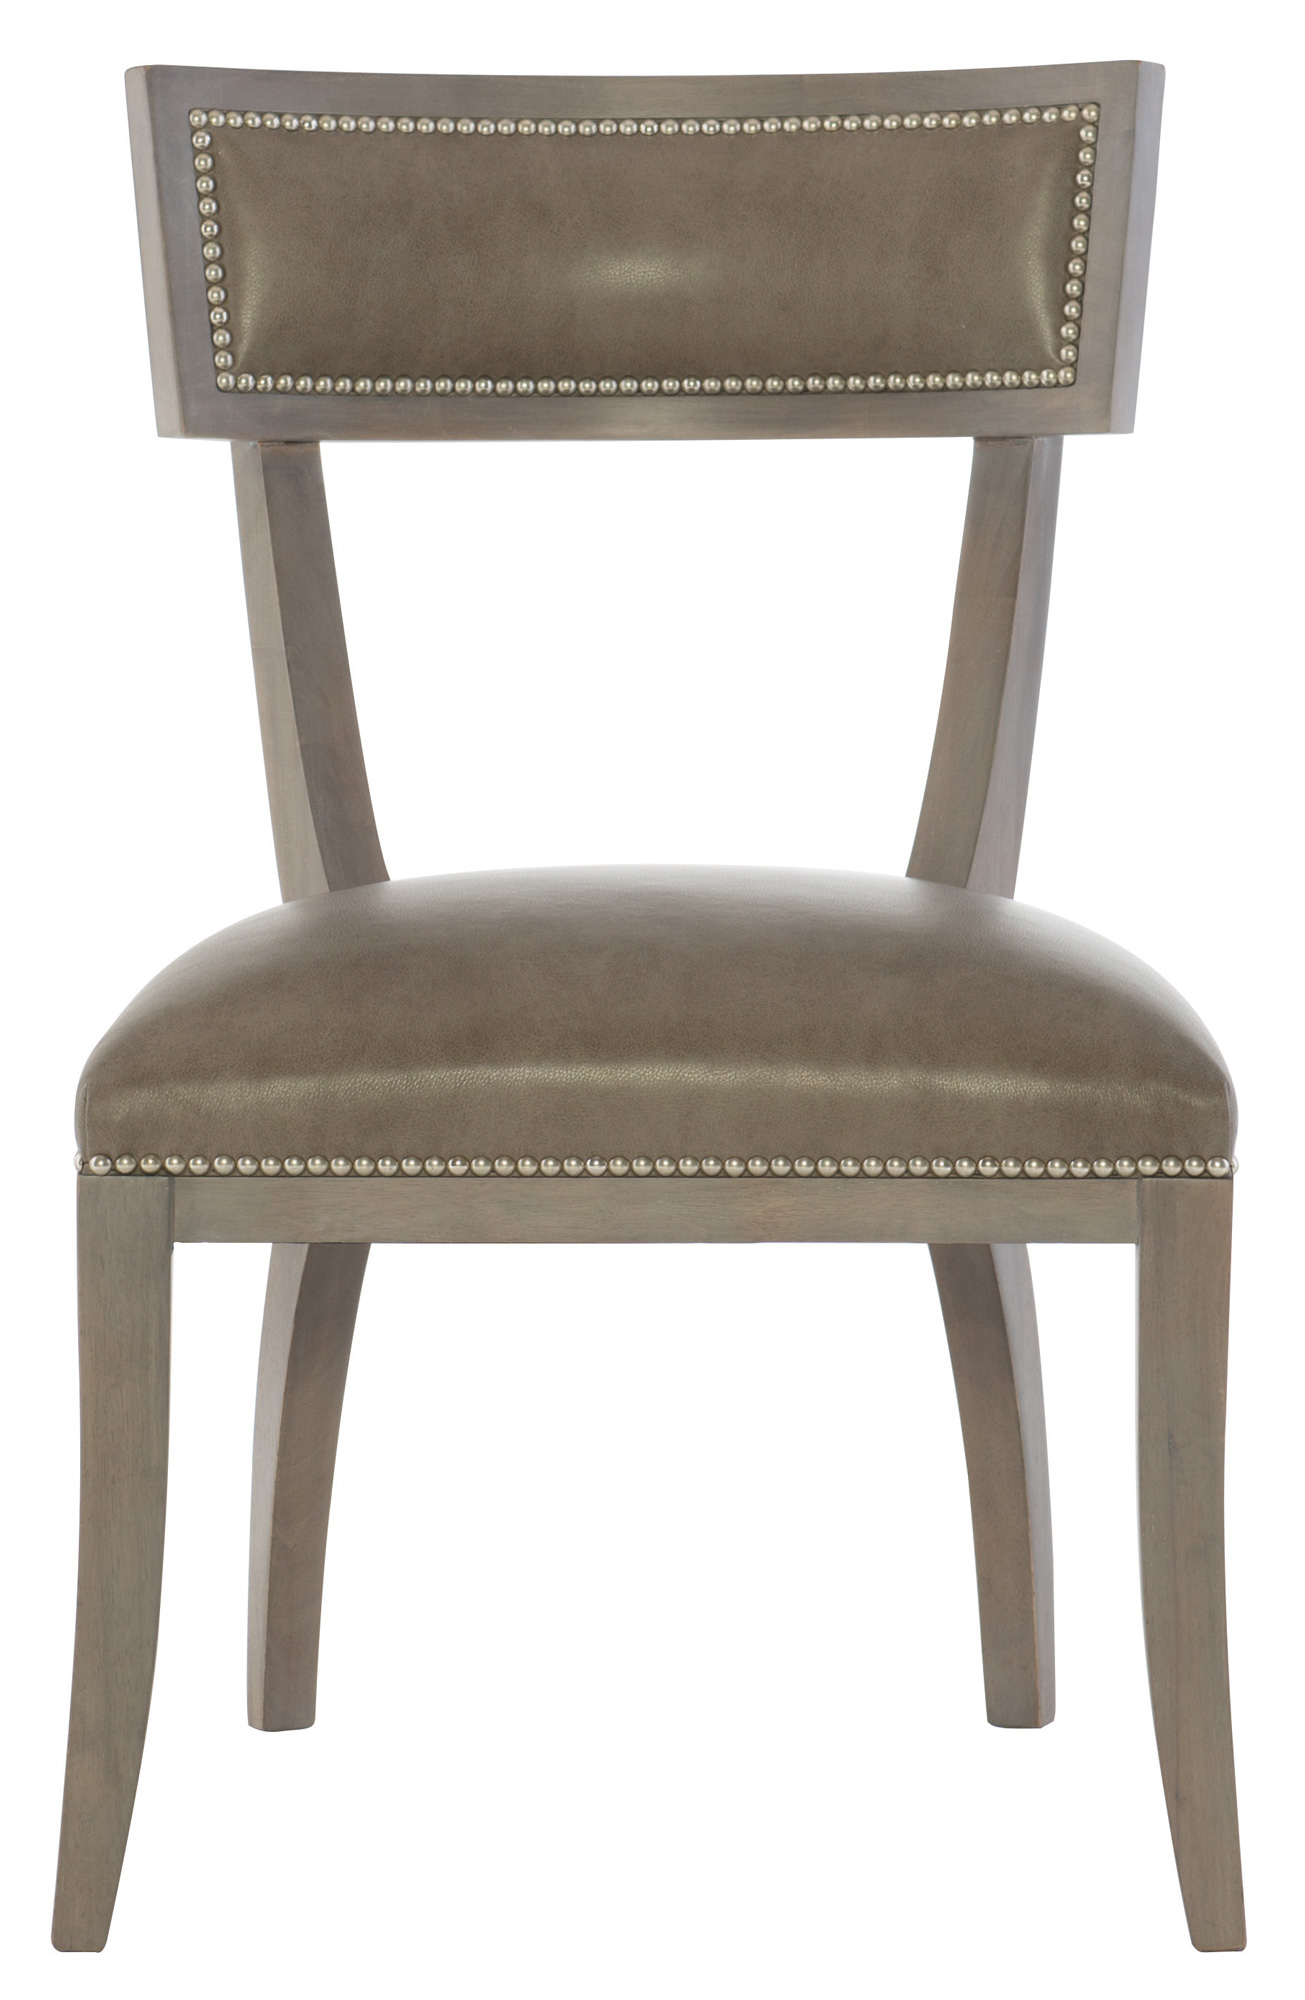 Bernhardt Chair Leather Dining Side Chair Bernhardt